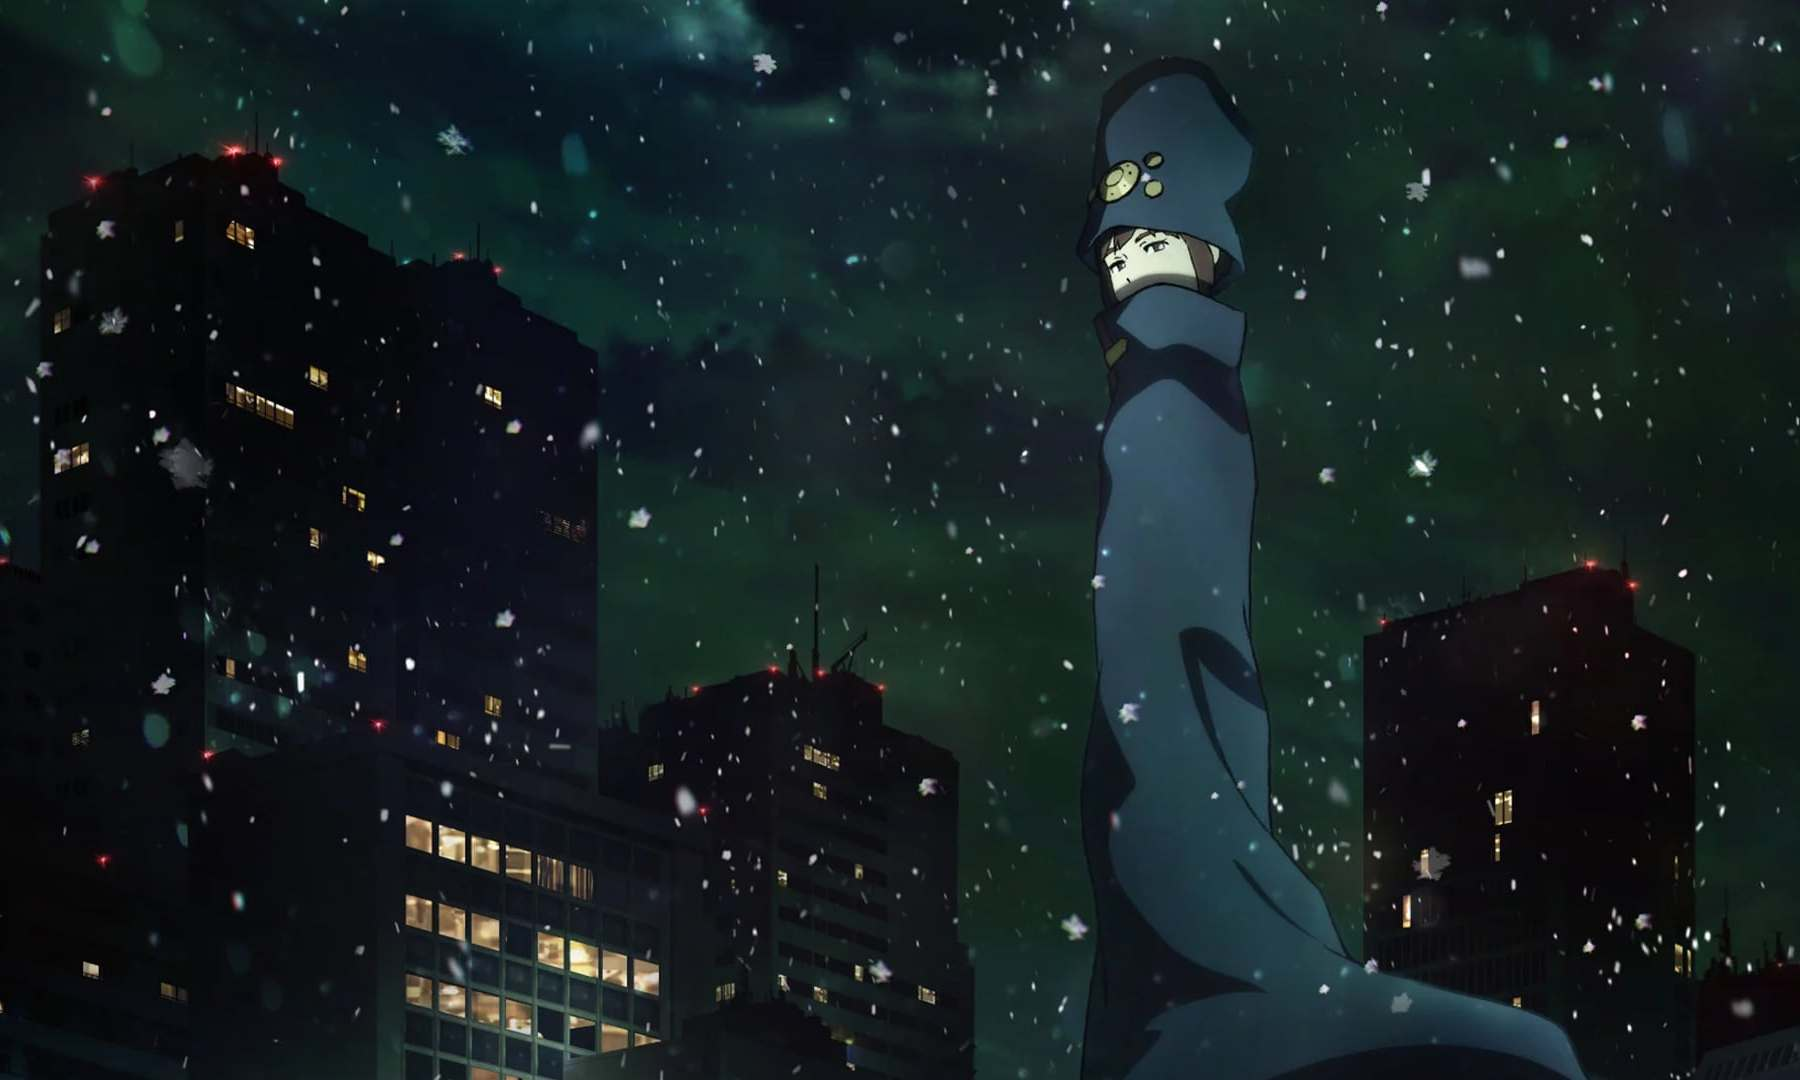 Boogiepop (2019) and the Power of Audio Engineering | Rogue Shogunate